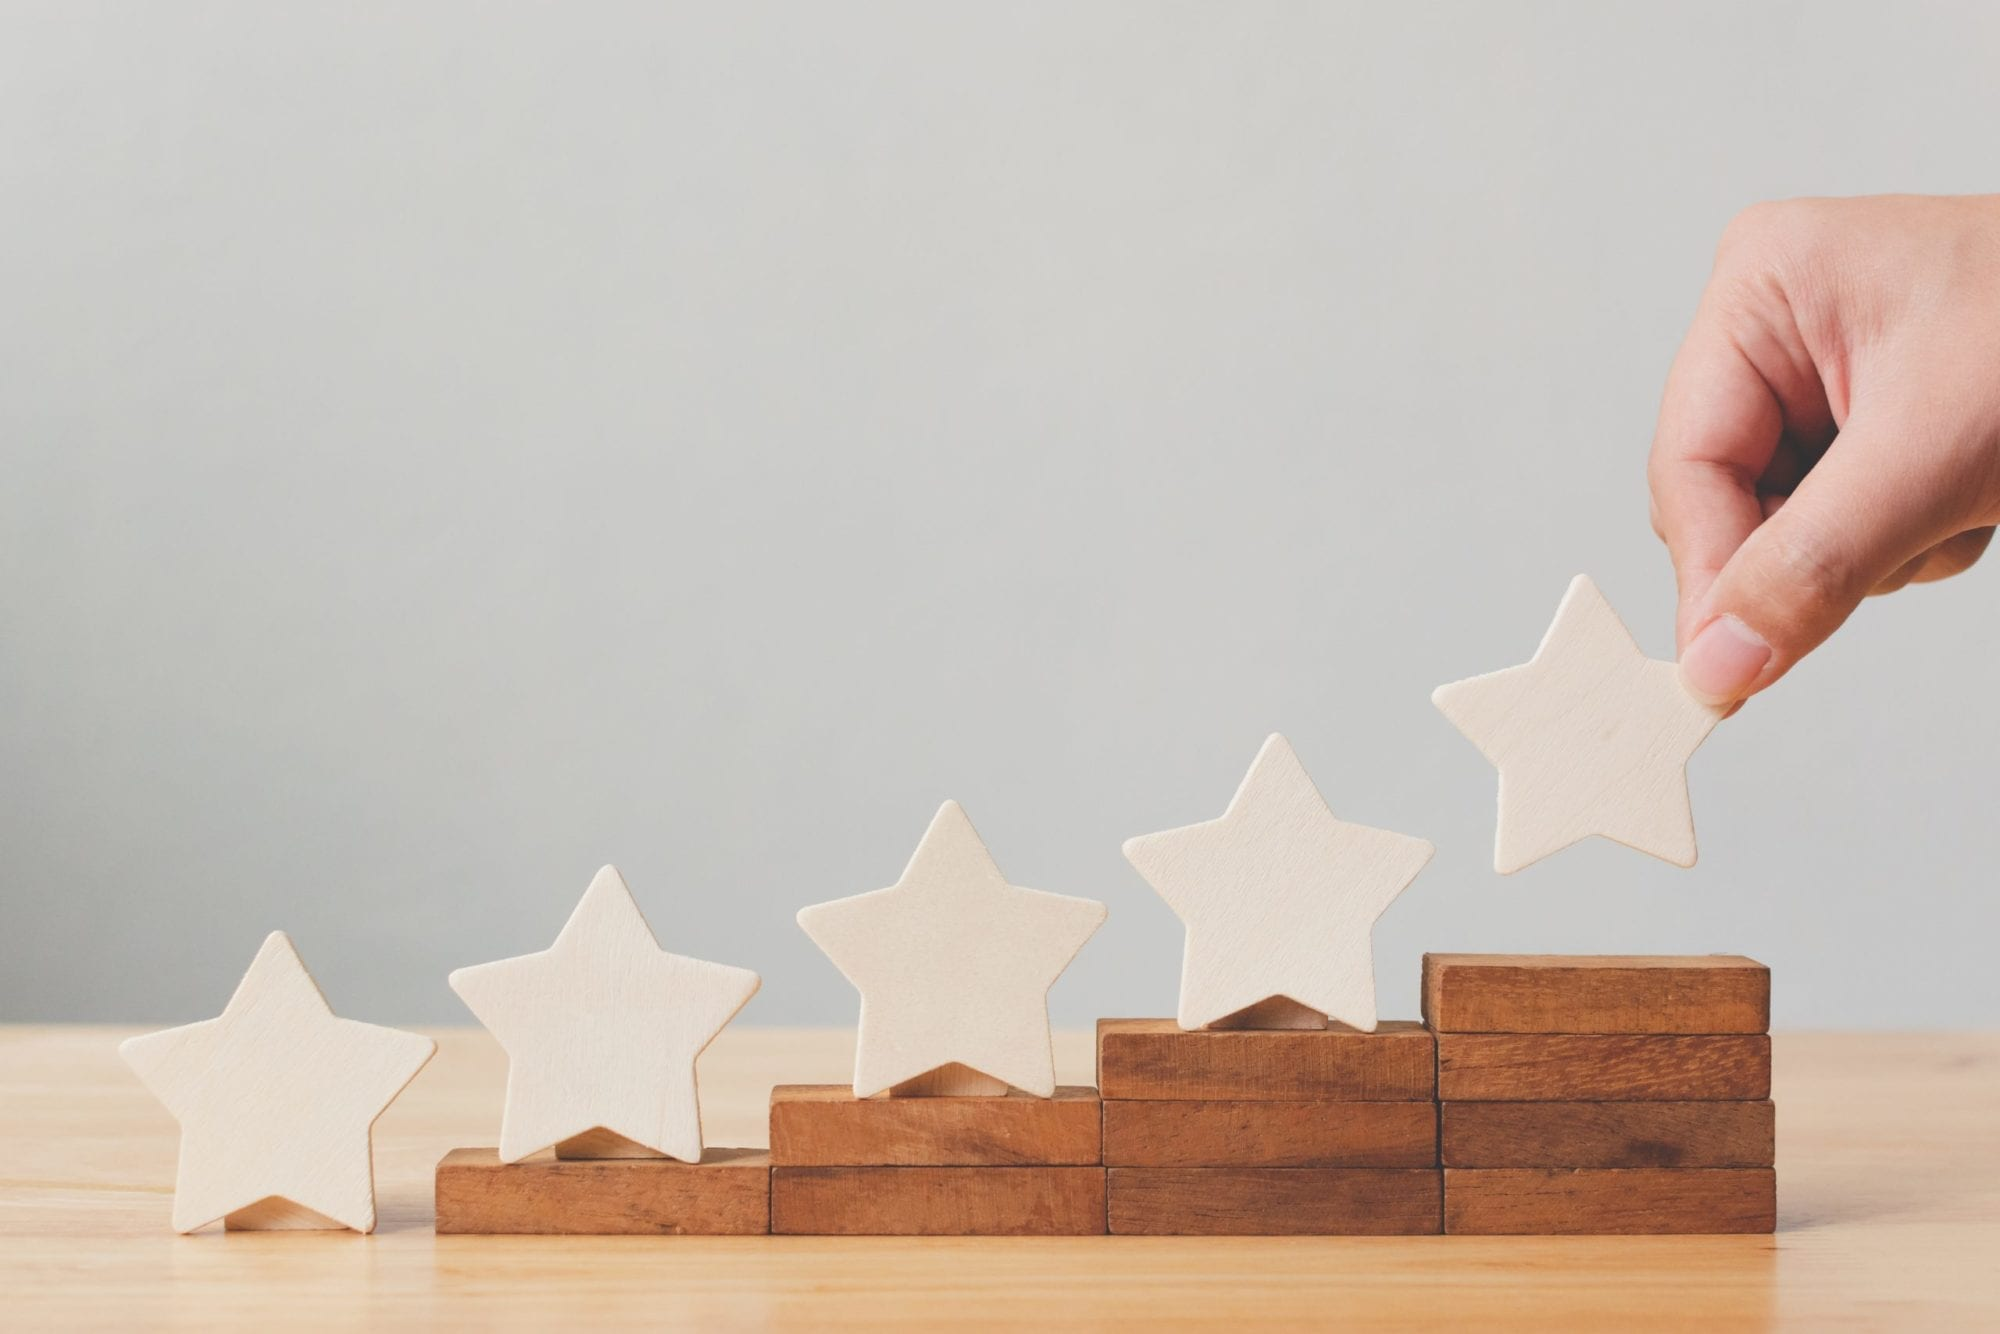 7 AREAS OF CONSTANT GROWTH | 5 Stars inclined